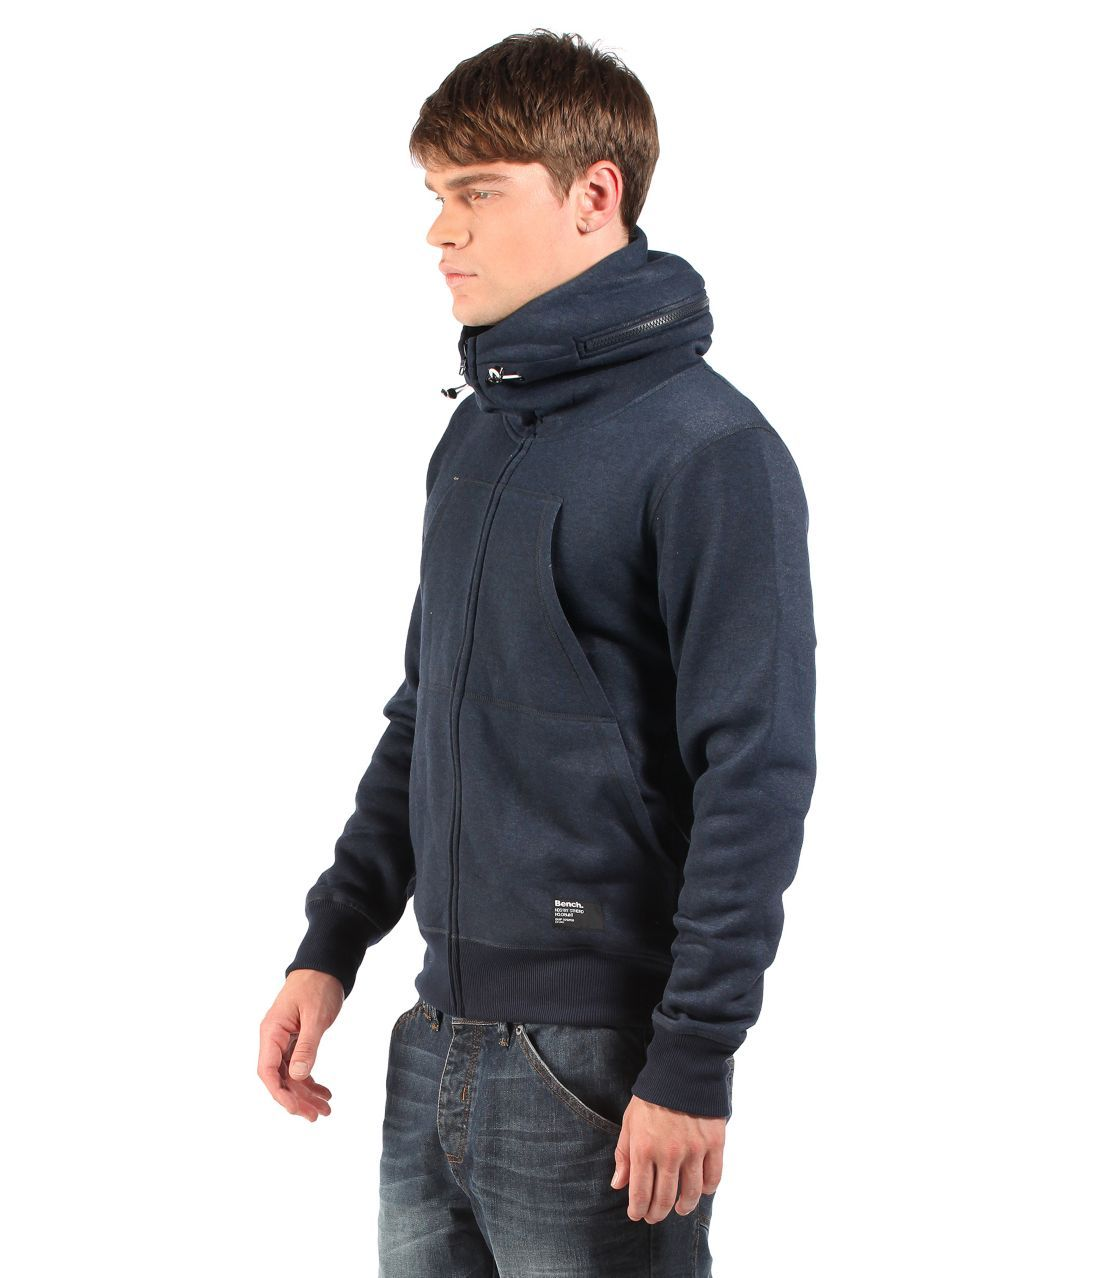 Regular fit Hoodie with zip out hood detailDouble Kangaroo pocketHood with bungee and toggle adjustment Bench label at lower pocket and back hemBMEA2300NY031